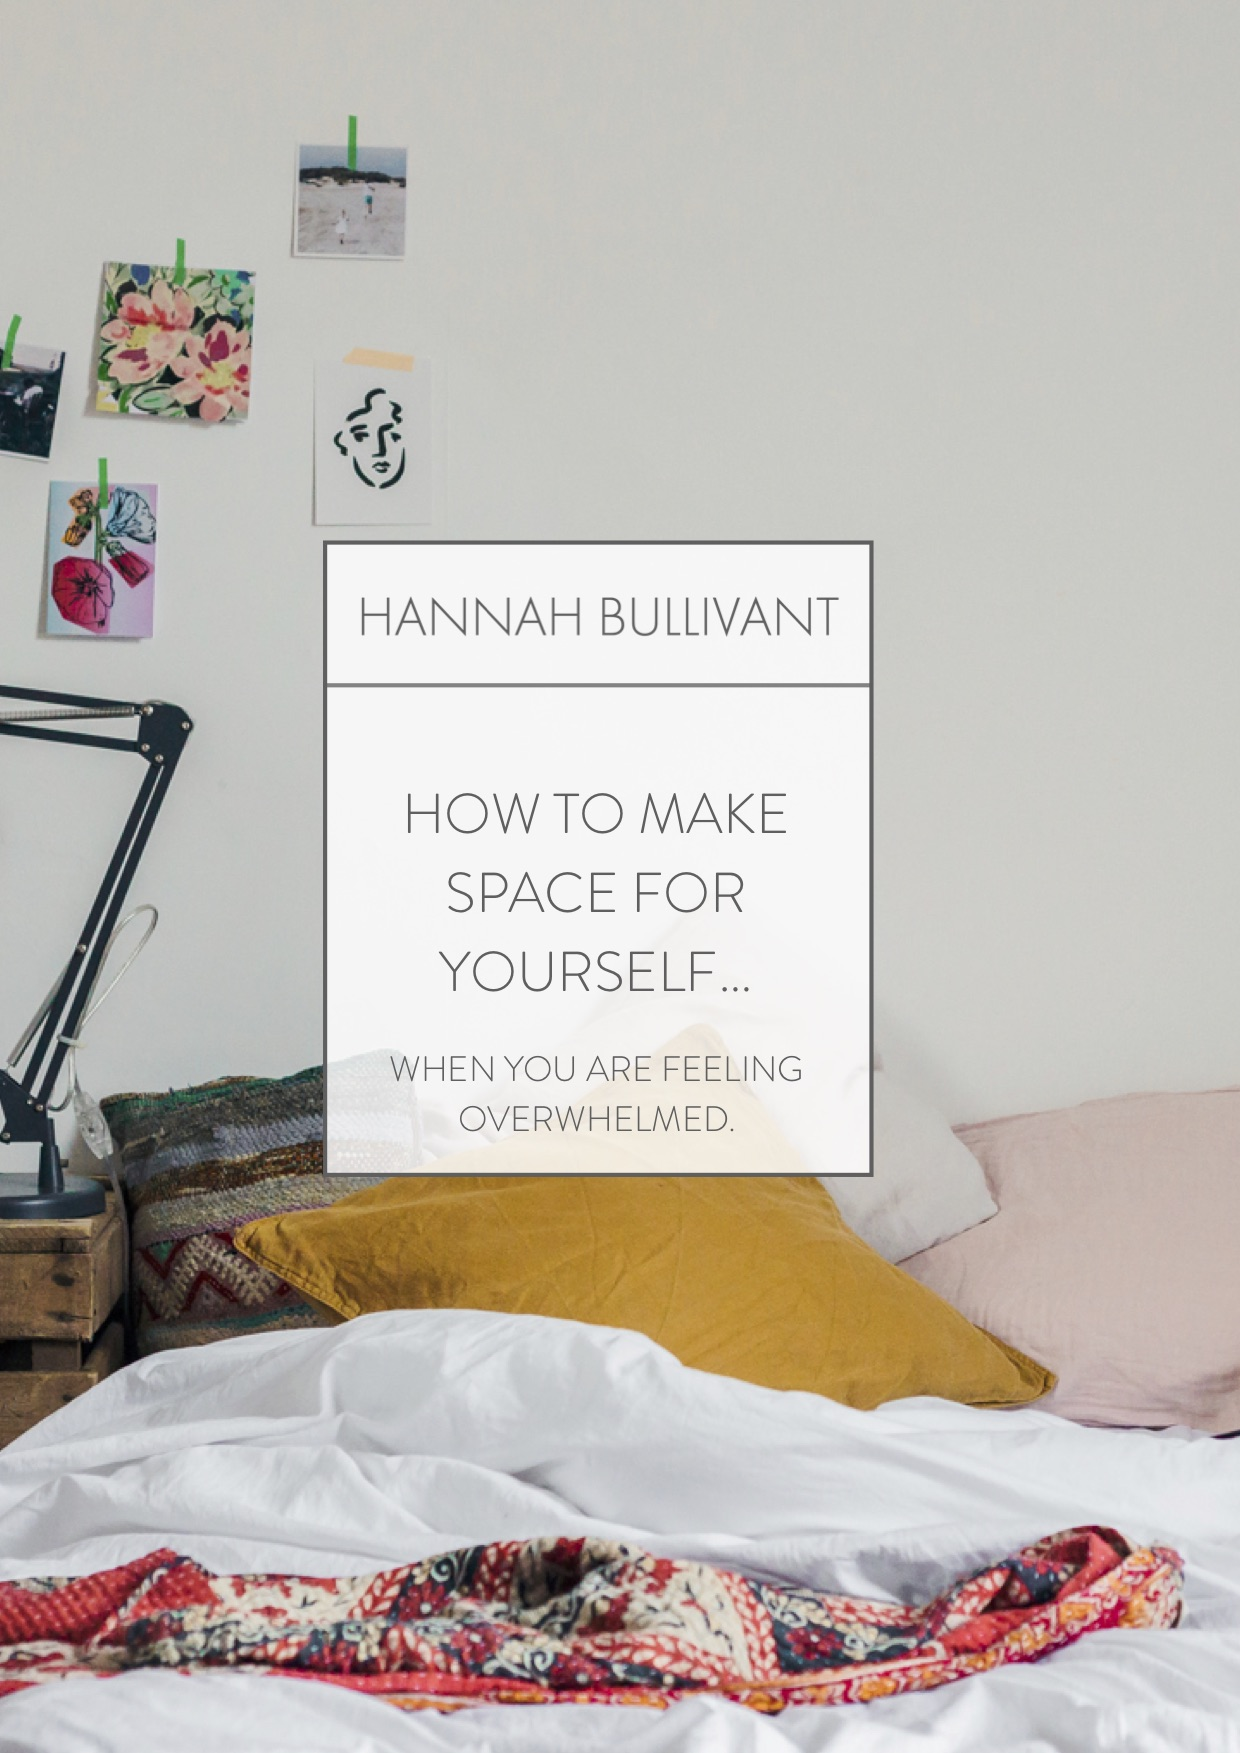 How to make space for yourself when you are feeling overwhelmed. | Hannah Bullivant